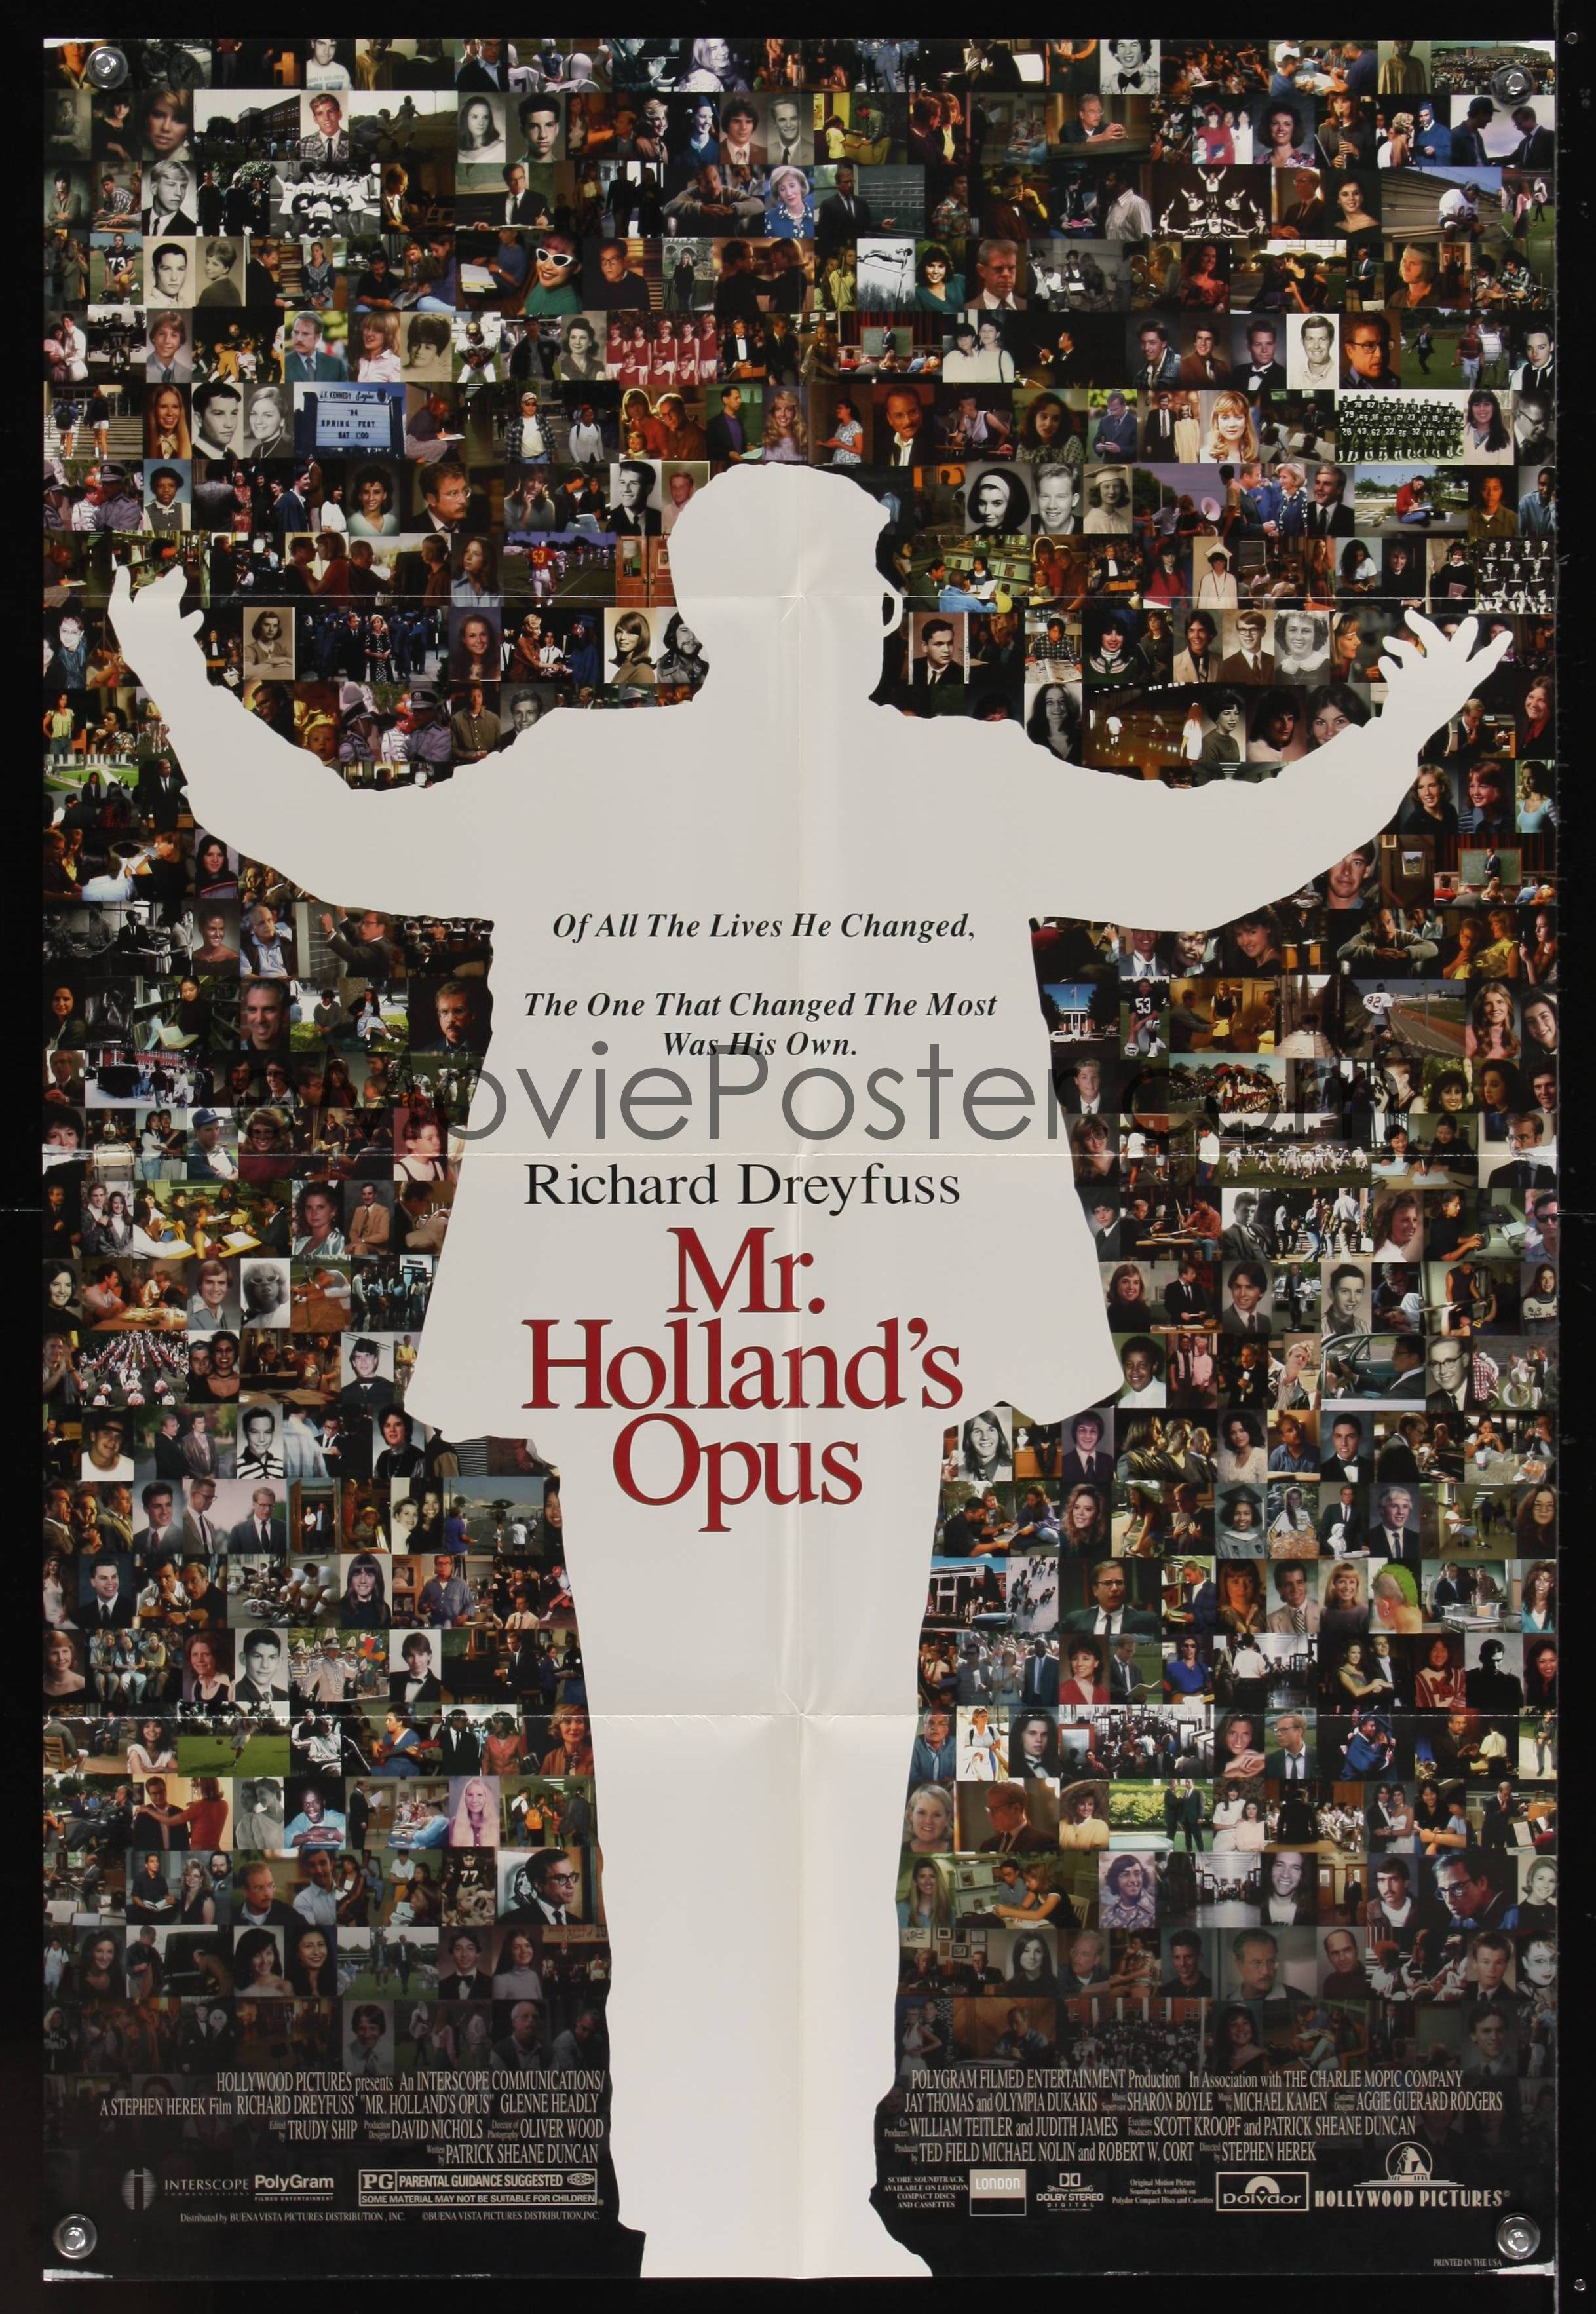 mr hollands opus essays Open document below is an essay on mr holland's opus from anti essays, your source for research papers, essays, and term paper examples.